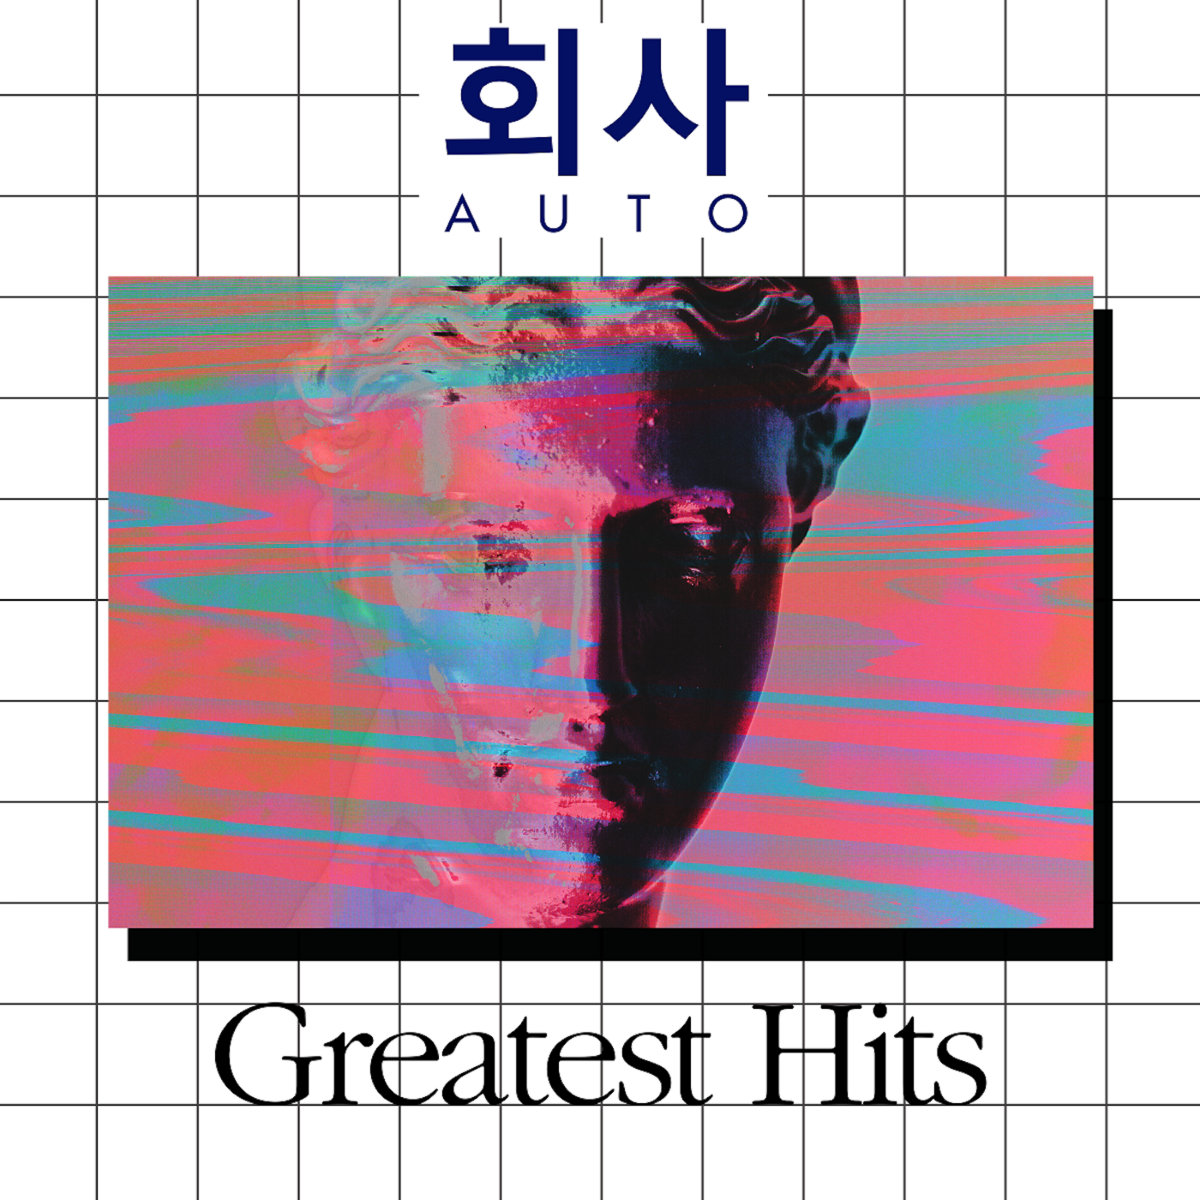 Greatest Hits cover